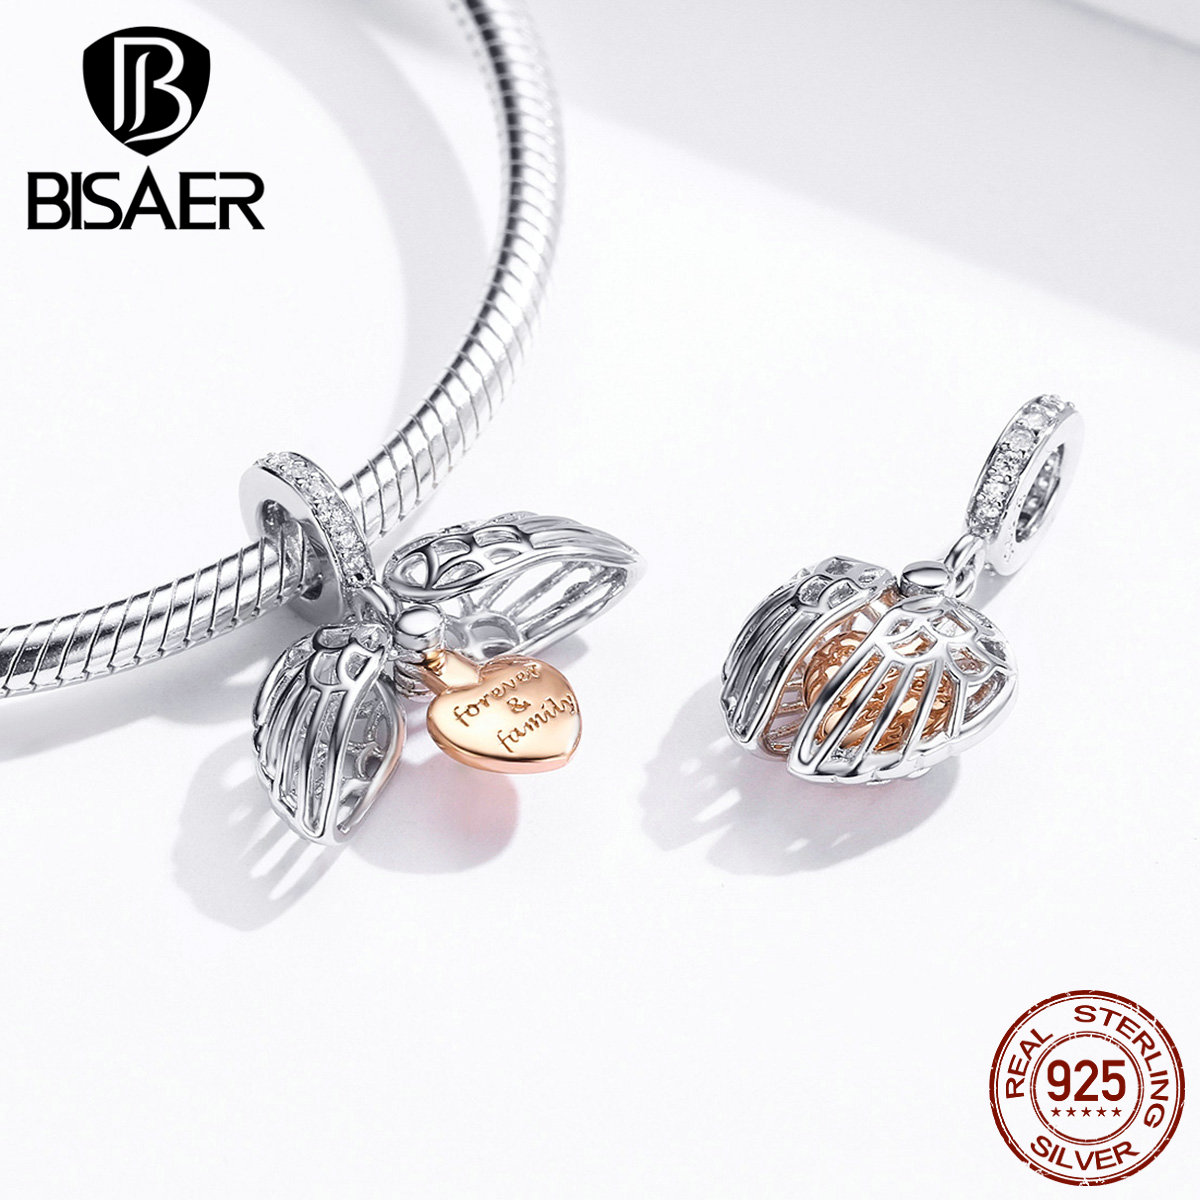 Forever Family Beads BISAER 925 Sterling Silver Family Forever Beads Love Heart Case Charms Fit Bracelets Jewelry Making ECC1299